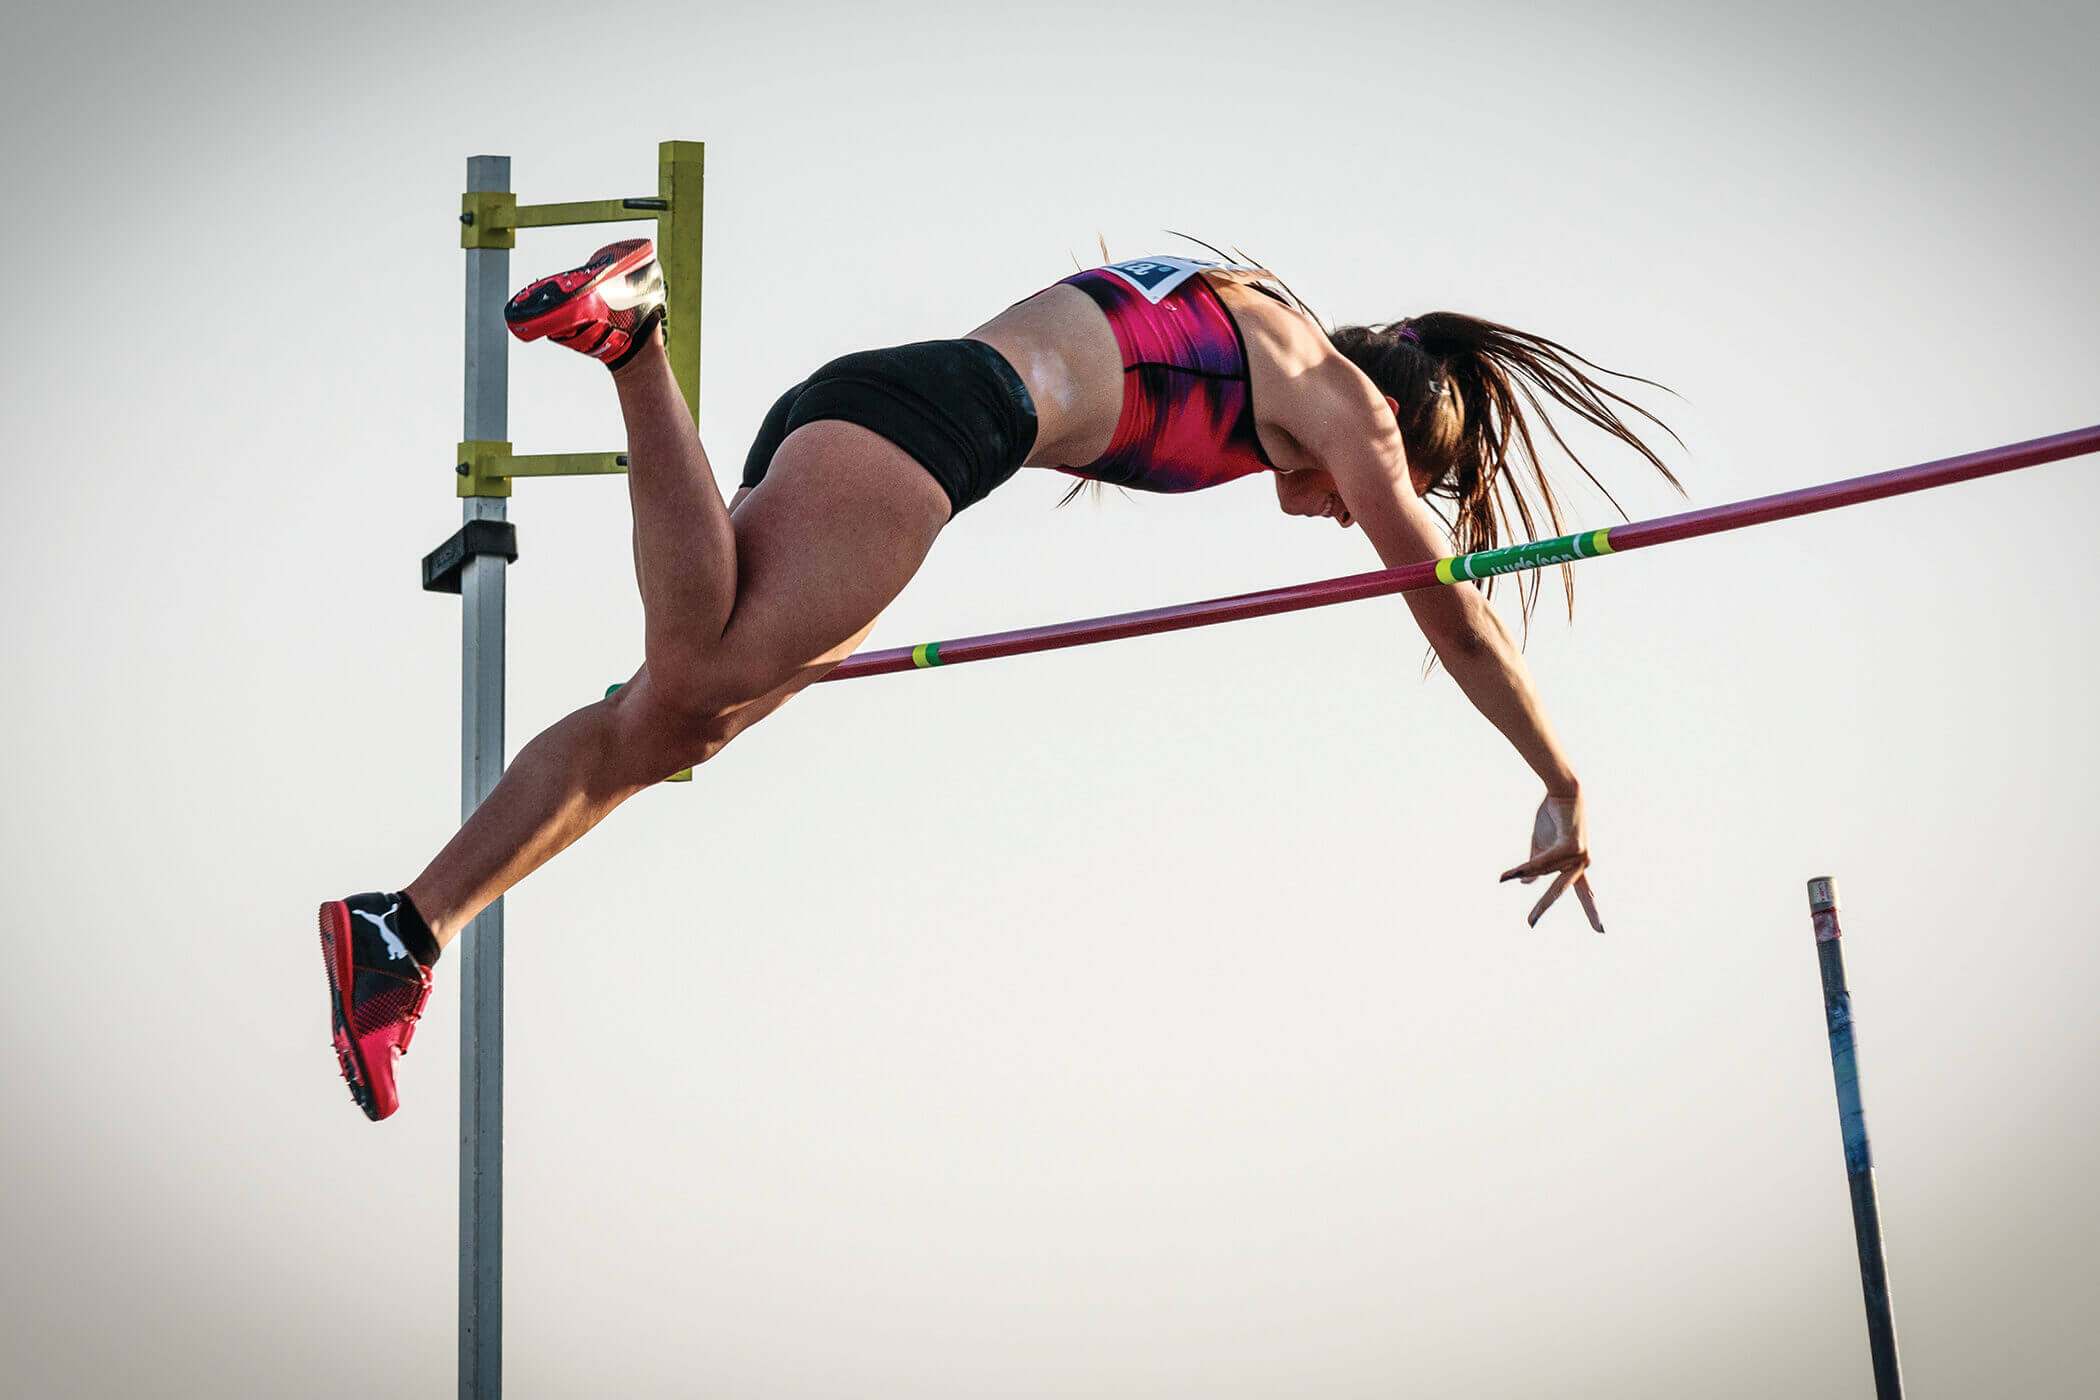 A mid-air pole vaulter arched over the bar she surmounted.